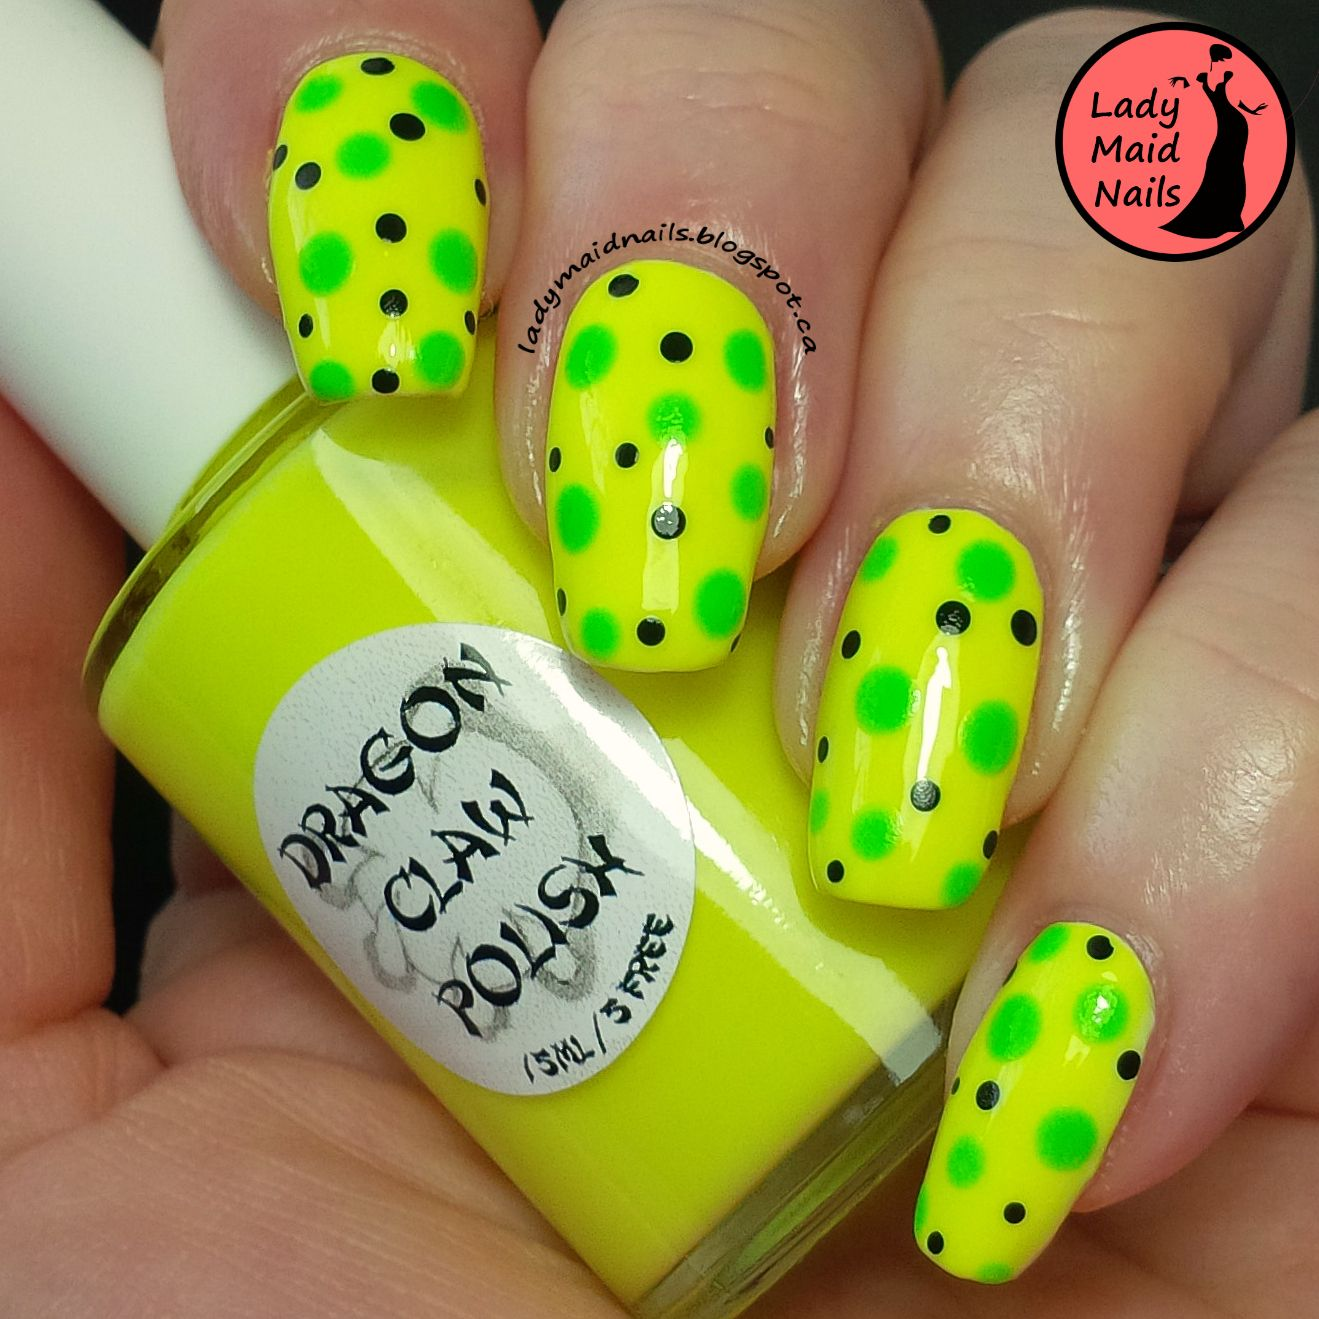 Lady maid nails dragon claw polish banana dots easy nail art